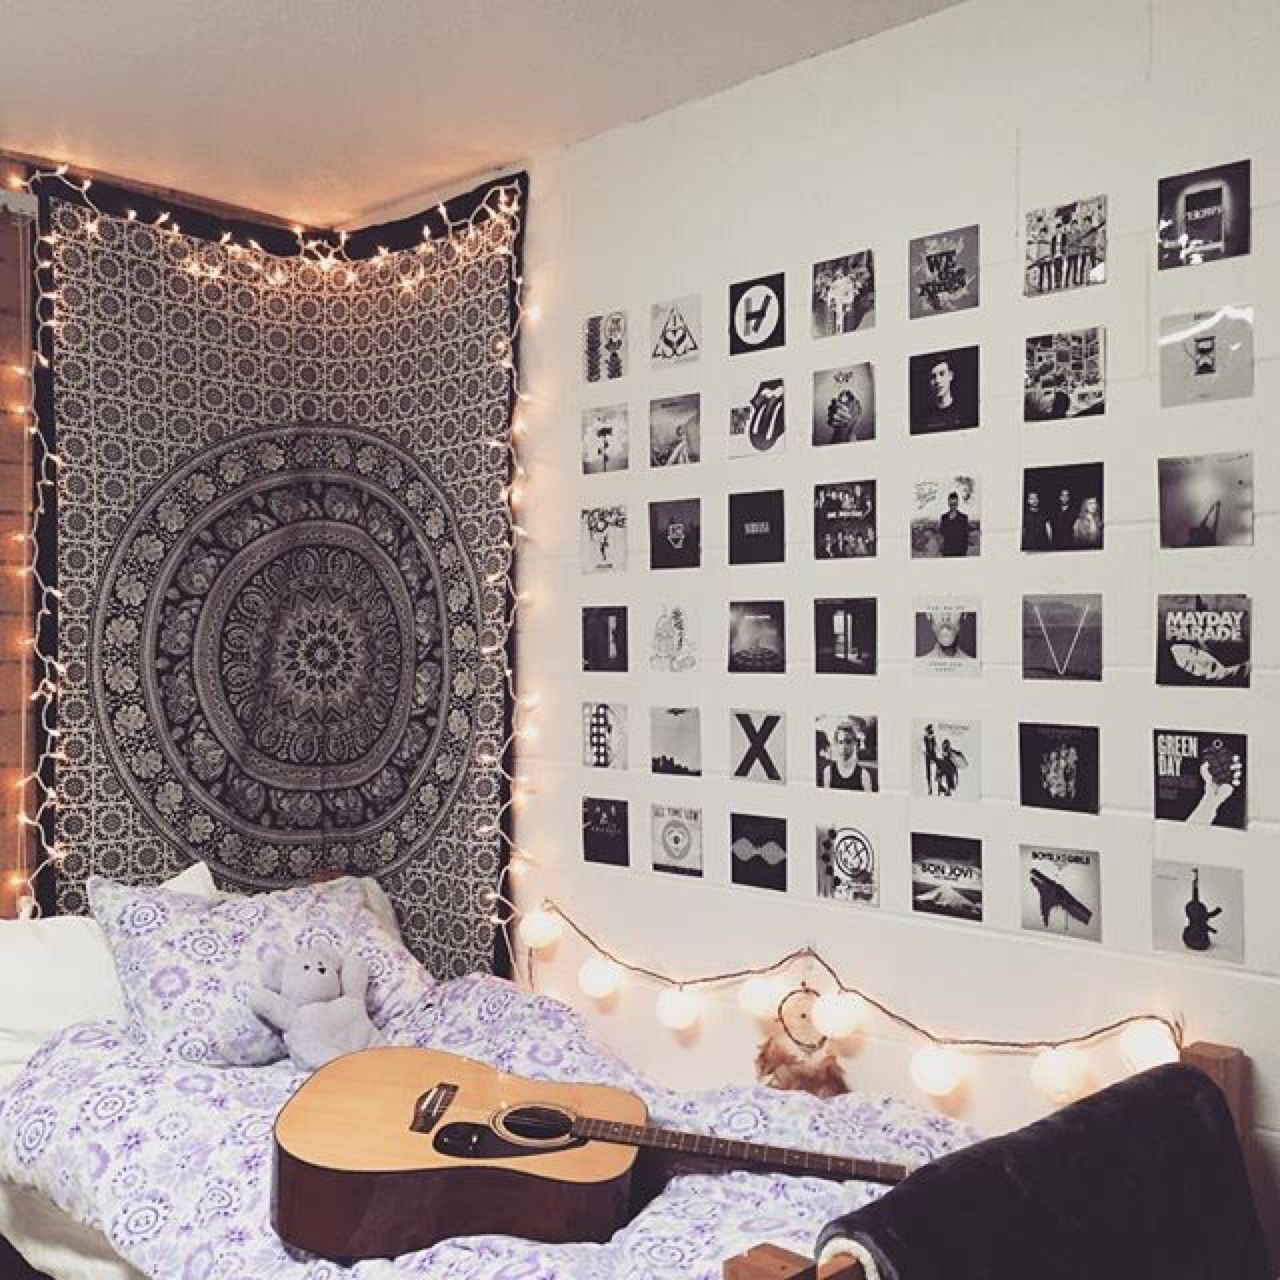 Source myroomspo tapestry bedroom tumblr bedroom for Bedroom ideas tumblr diy